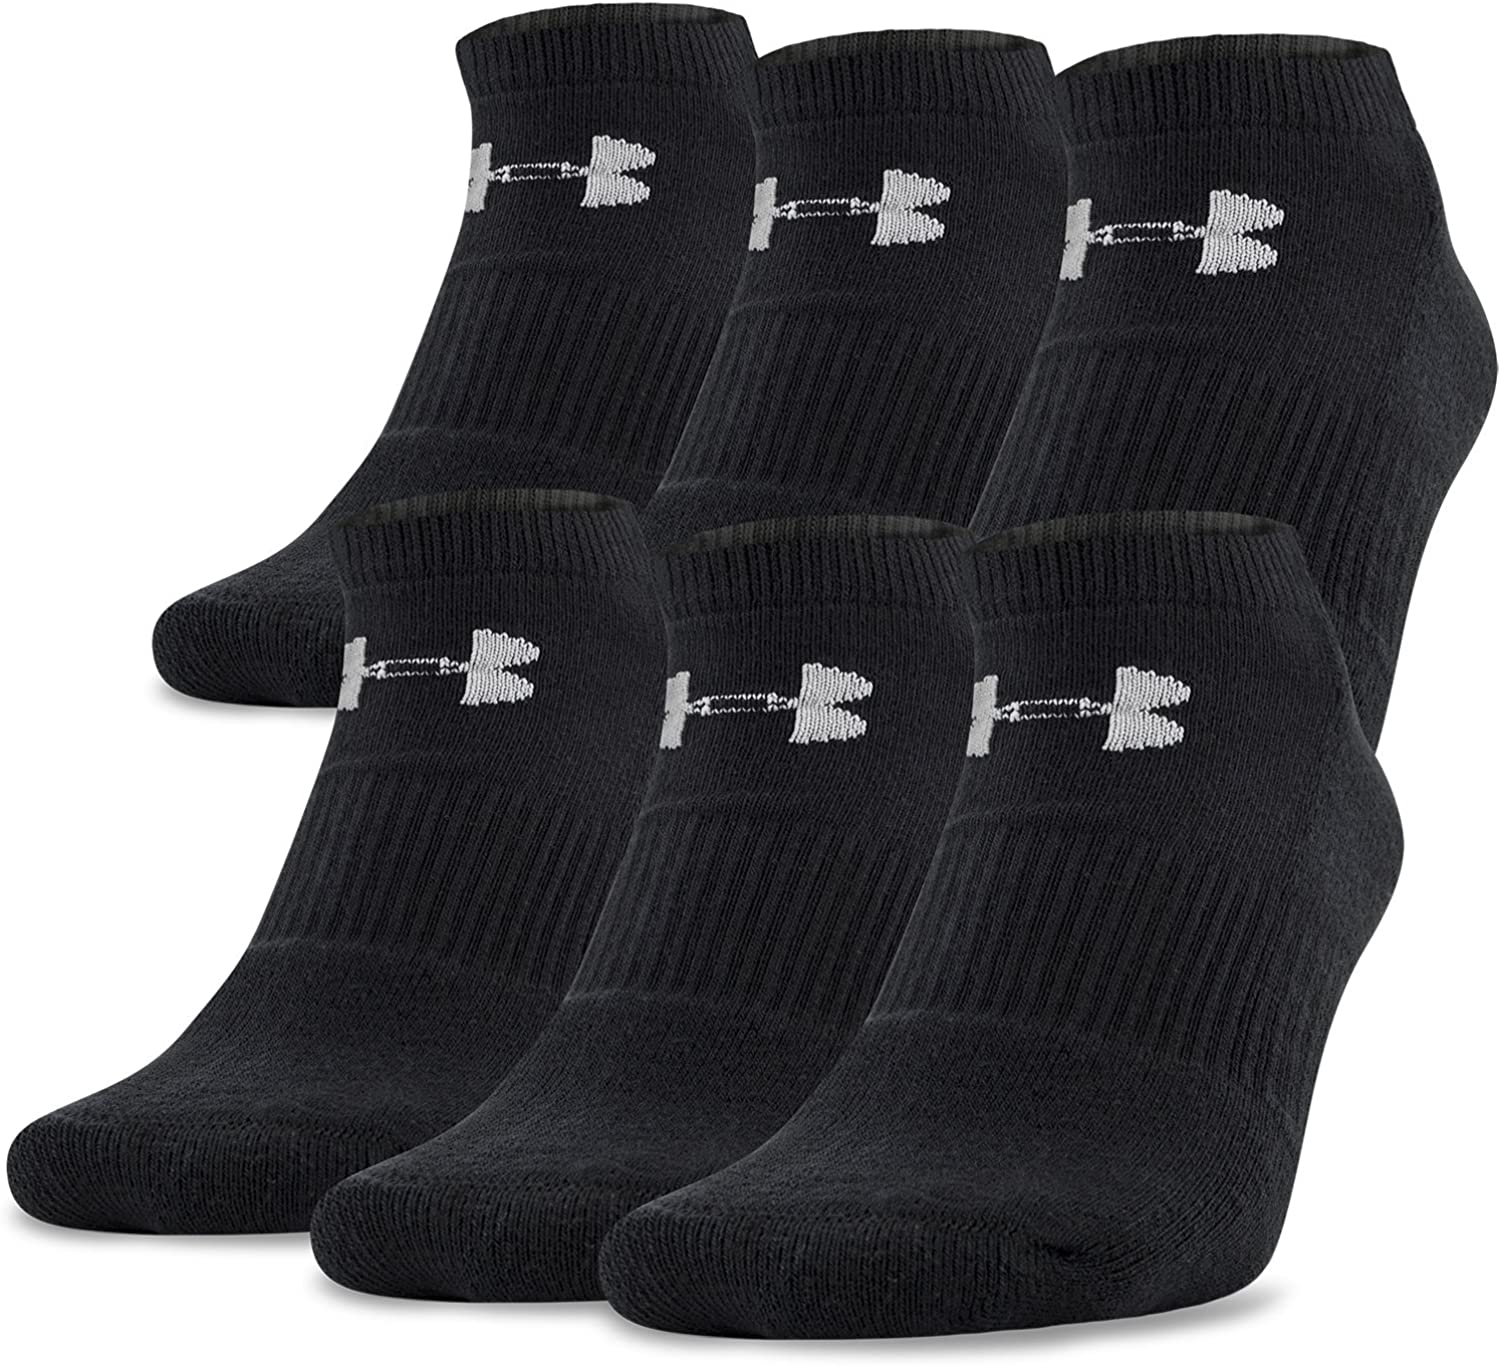 Under Armour Adult Charged Cotton 2.0 No Show Socks, 6-Pairs: Clothing